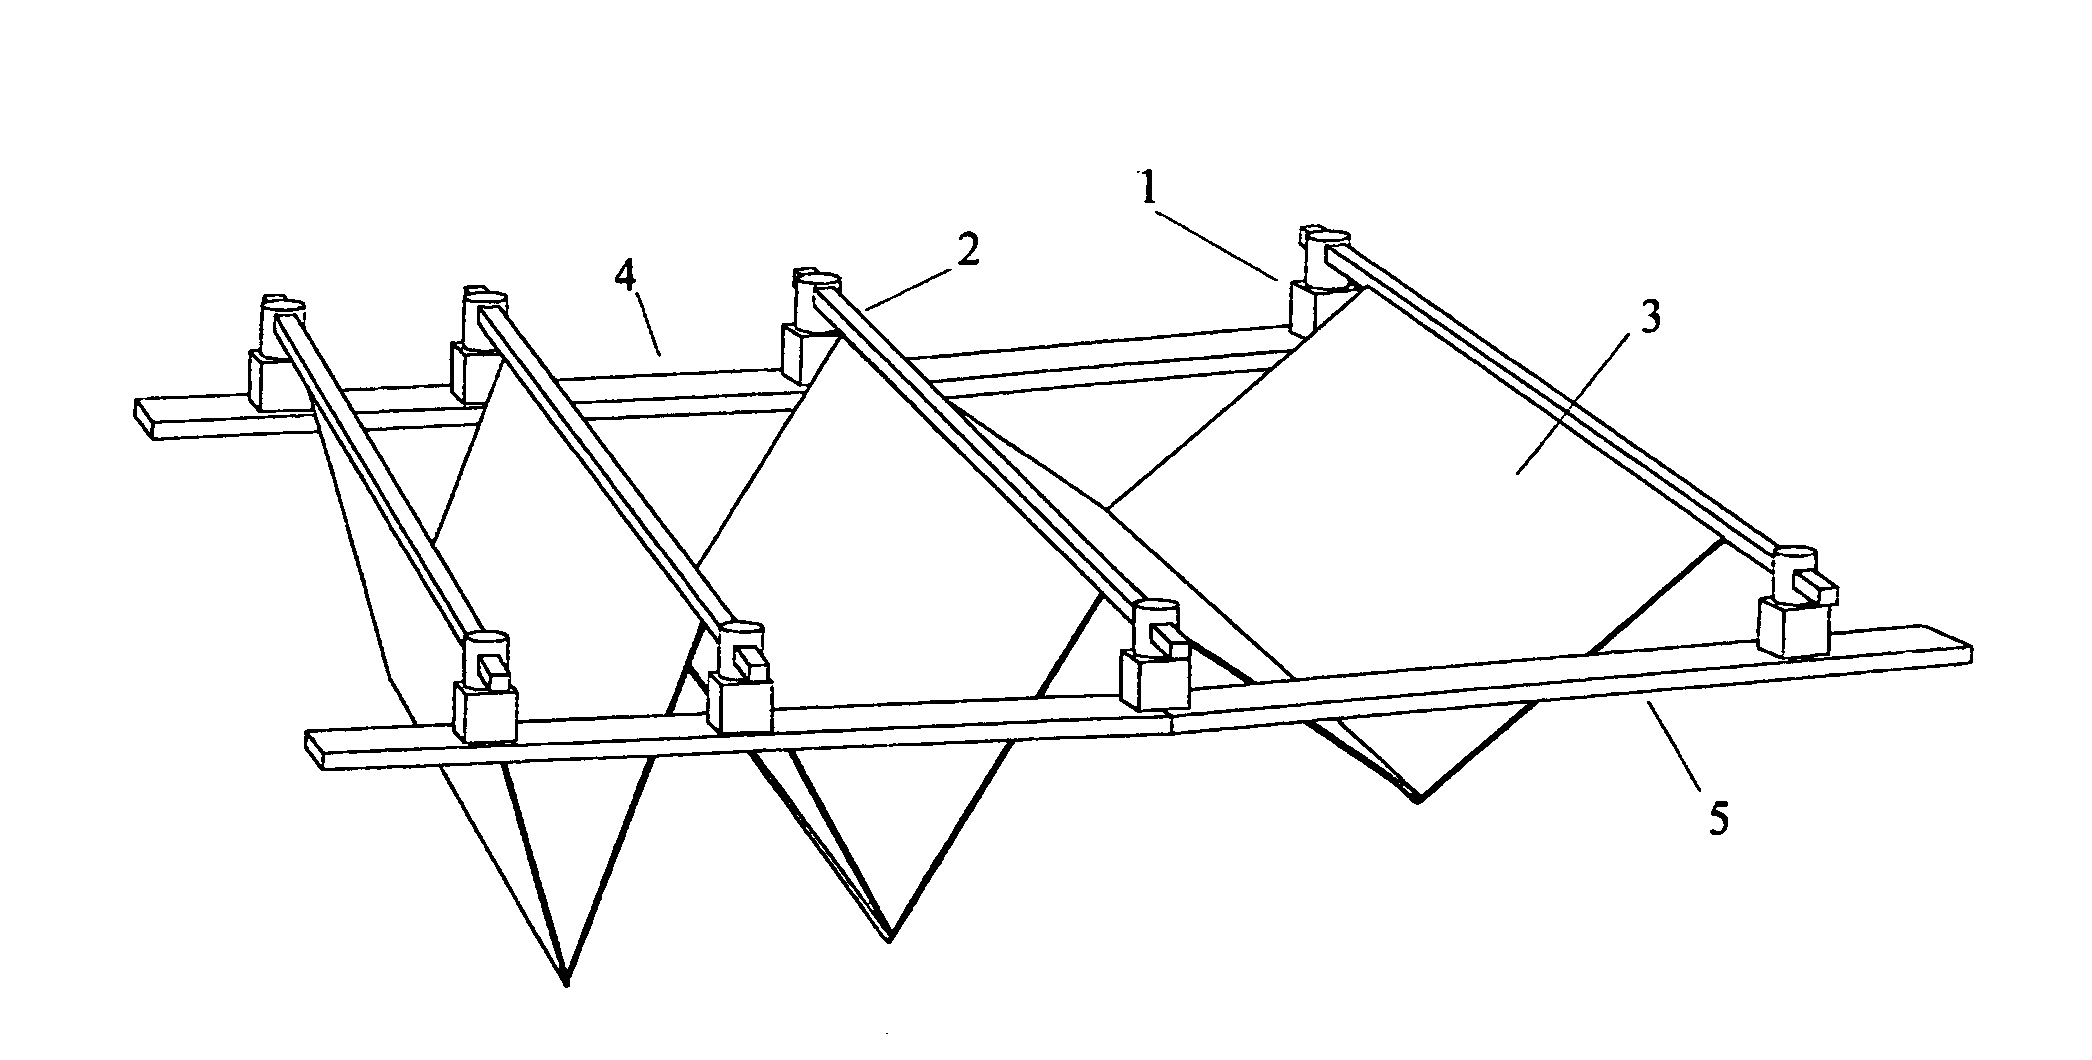 Us20060005473a1 Adaptable Retractable Fabric Roof